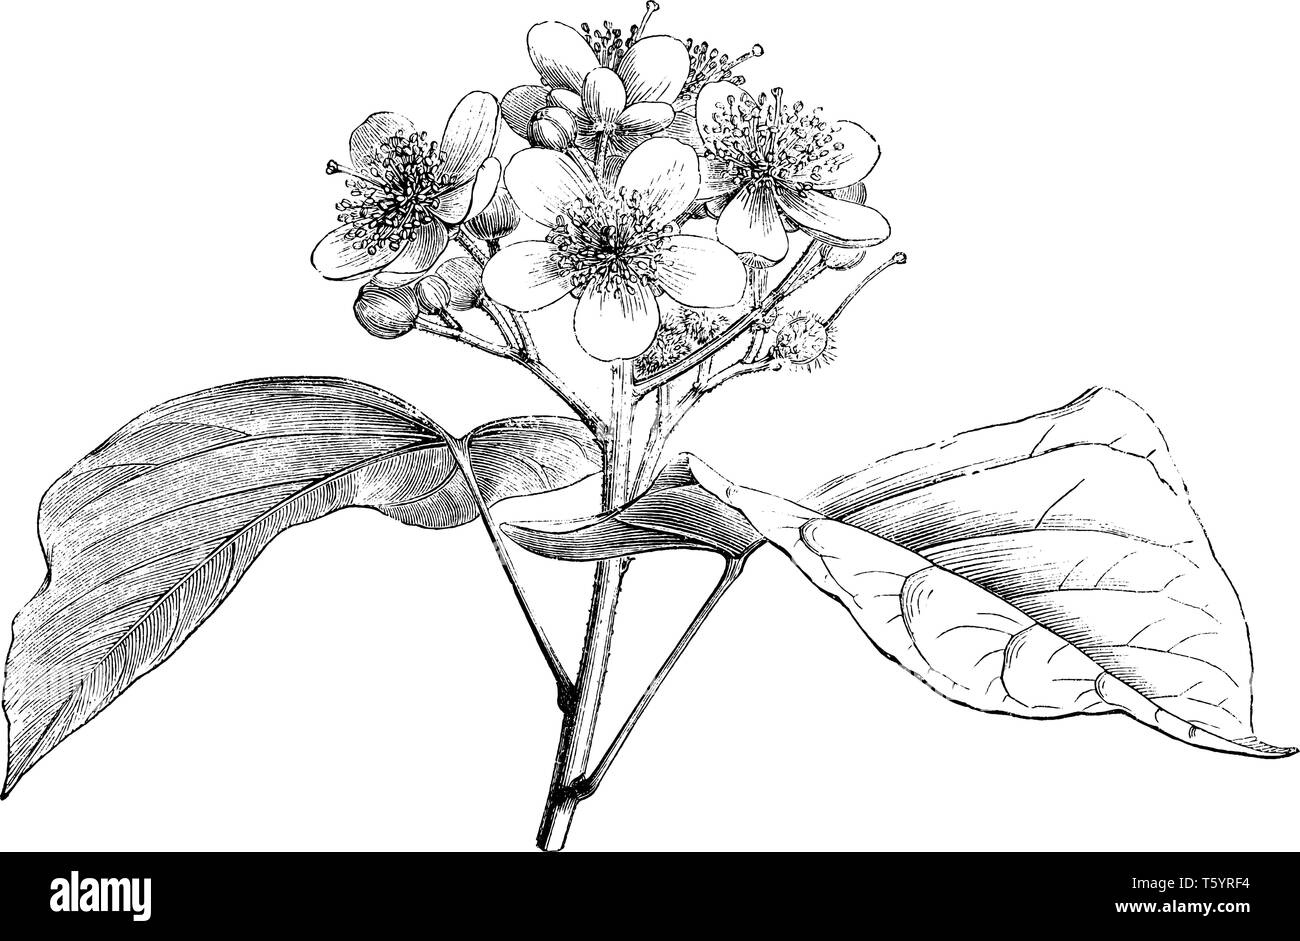 The Bixa Orellana flowers are in clusters with five petals. Leaves are alternate growing and stem is hairy, vintage line drawing or engraving illustra - Stock Image